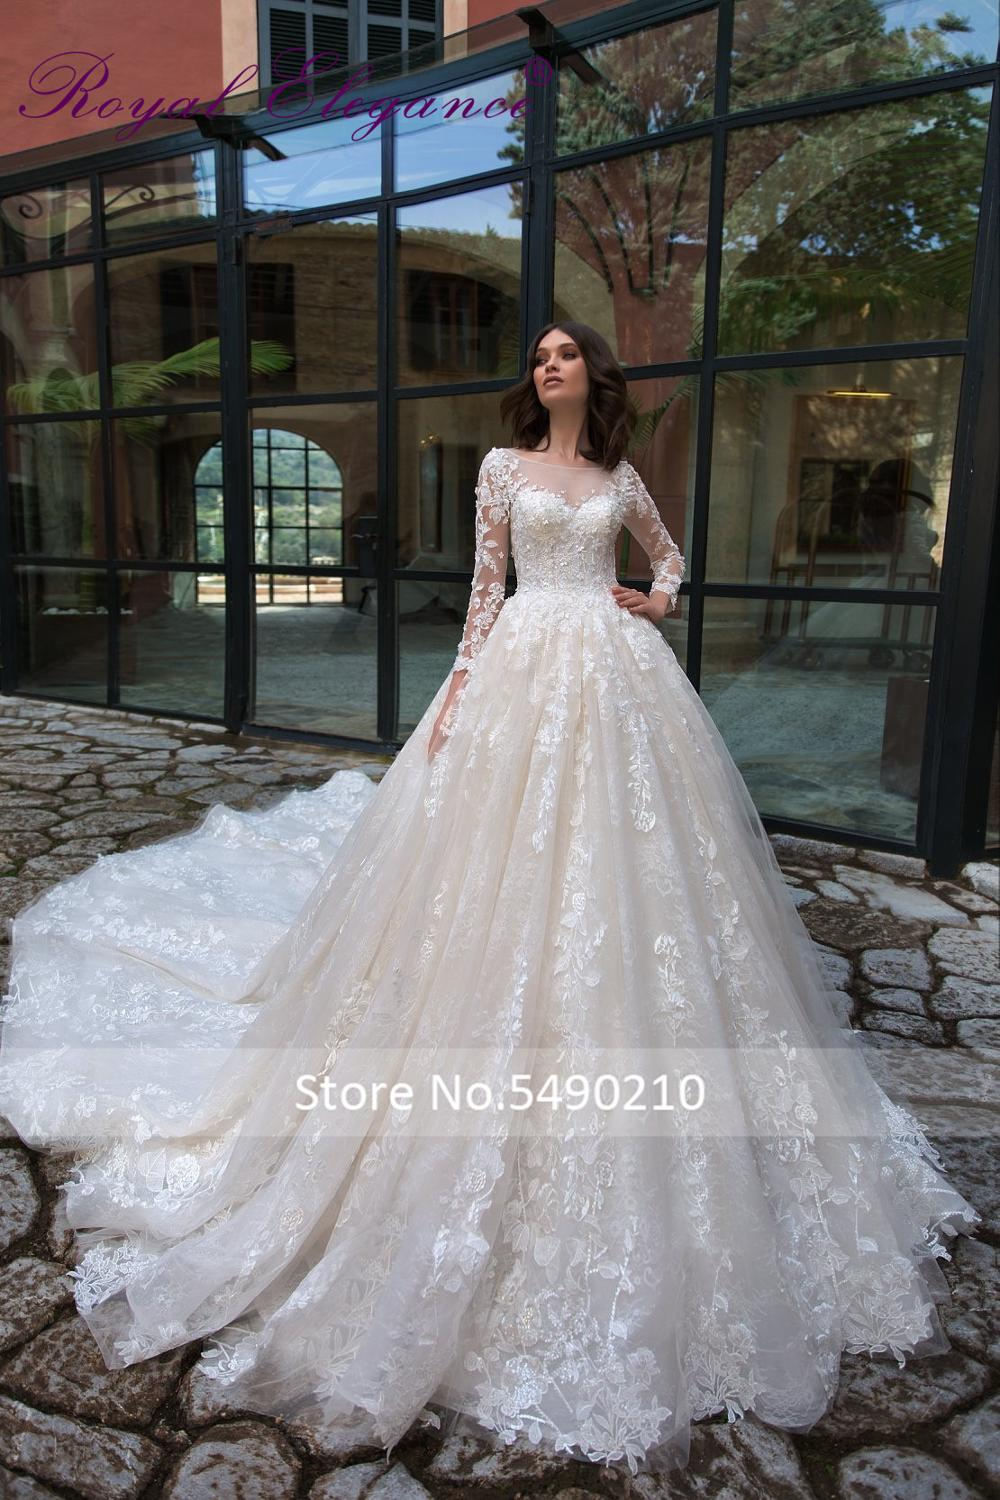 Royal Elegance Long Sleeve Wedding Dress Cathedral Ball Gown Scoop Neckline Vestido De Festa Flora Lace Appliques Wedding Dress